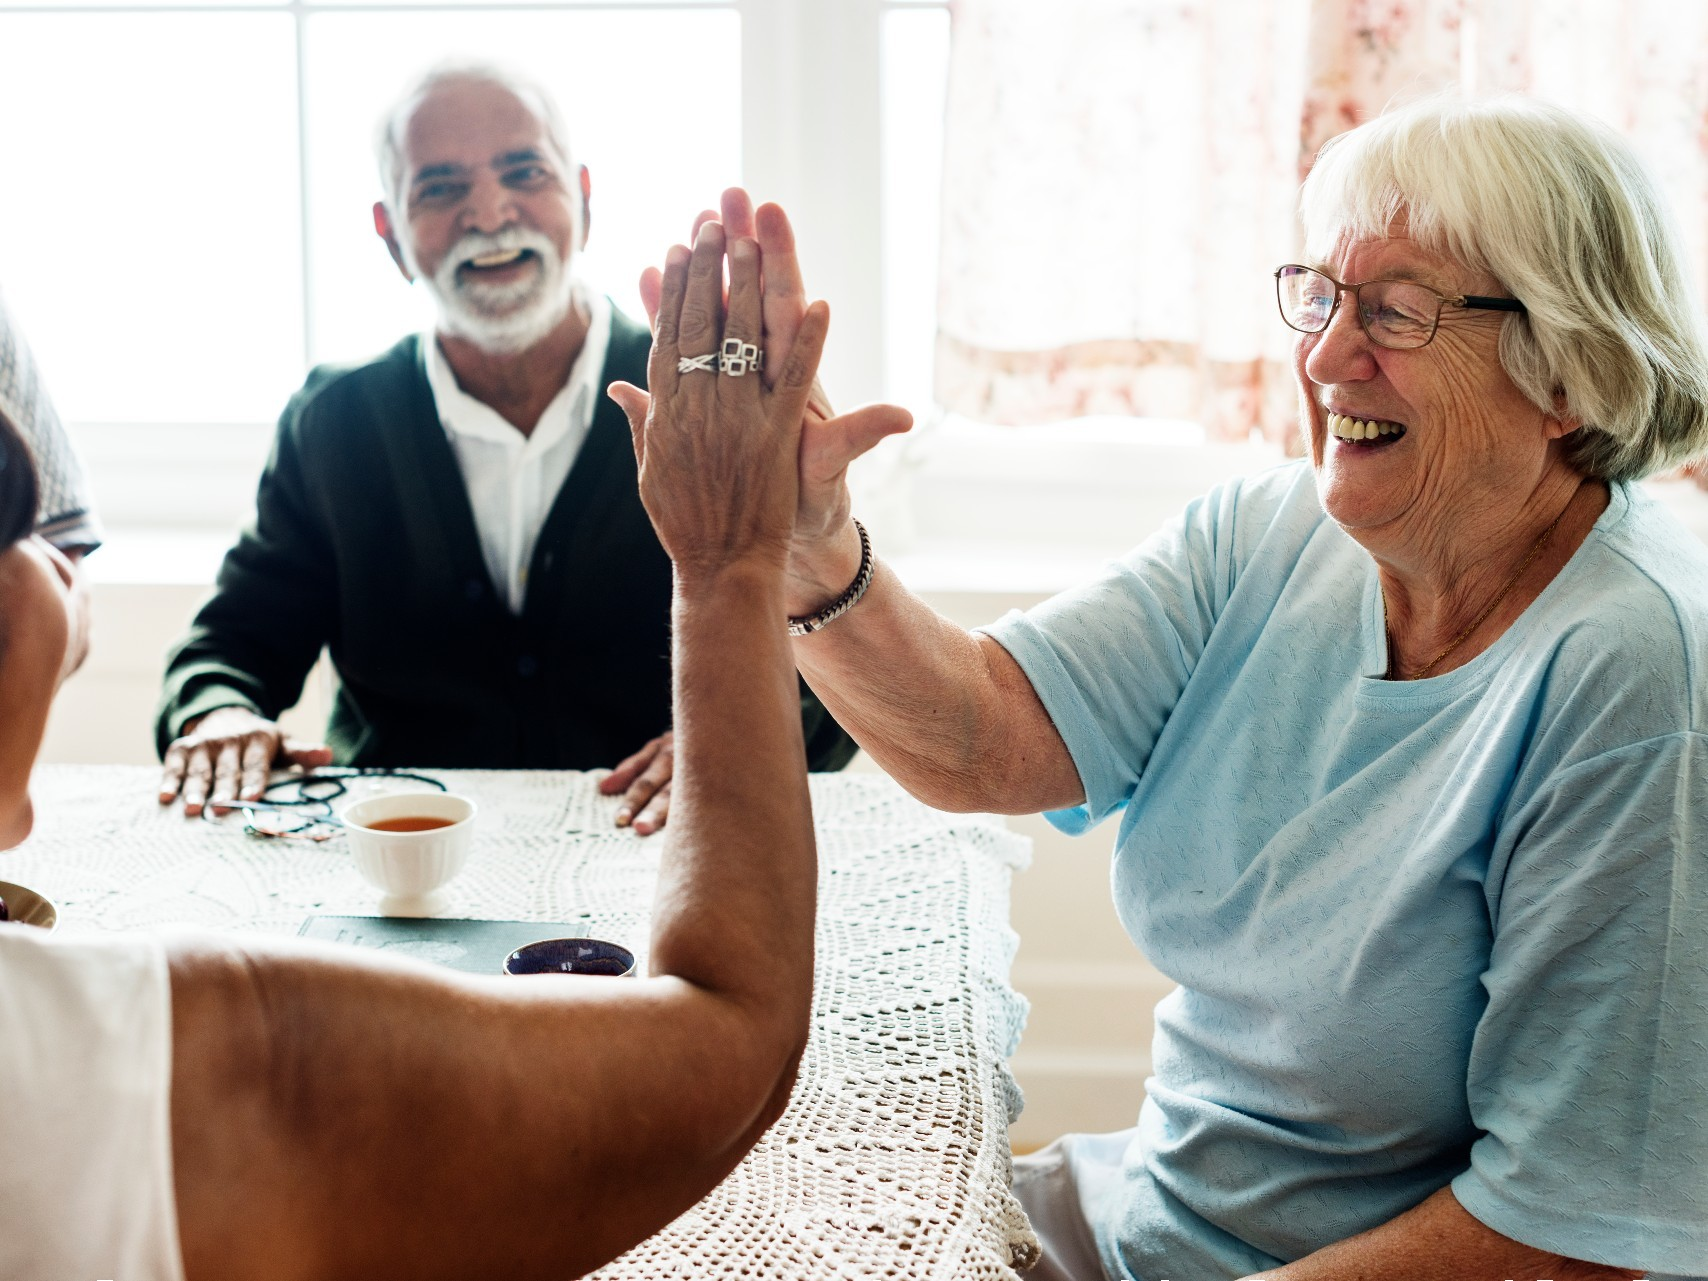 Two older people enjoying themselves with a carer